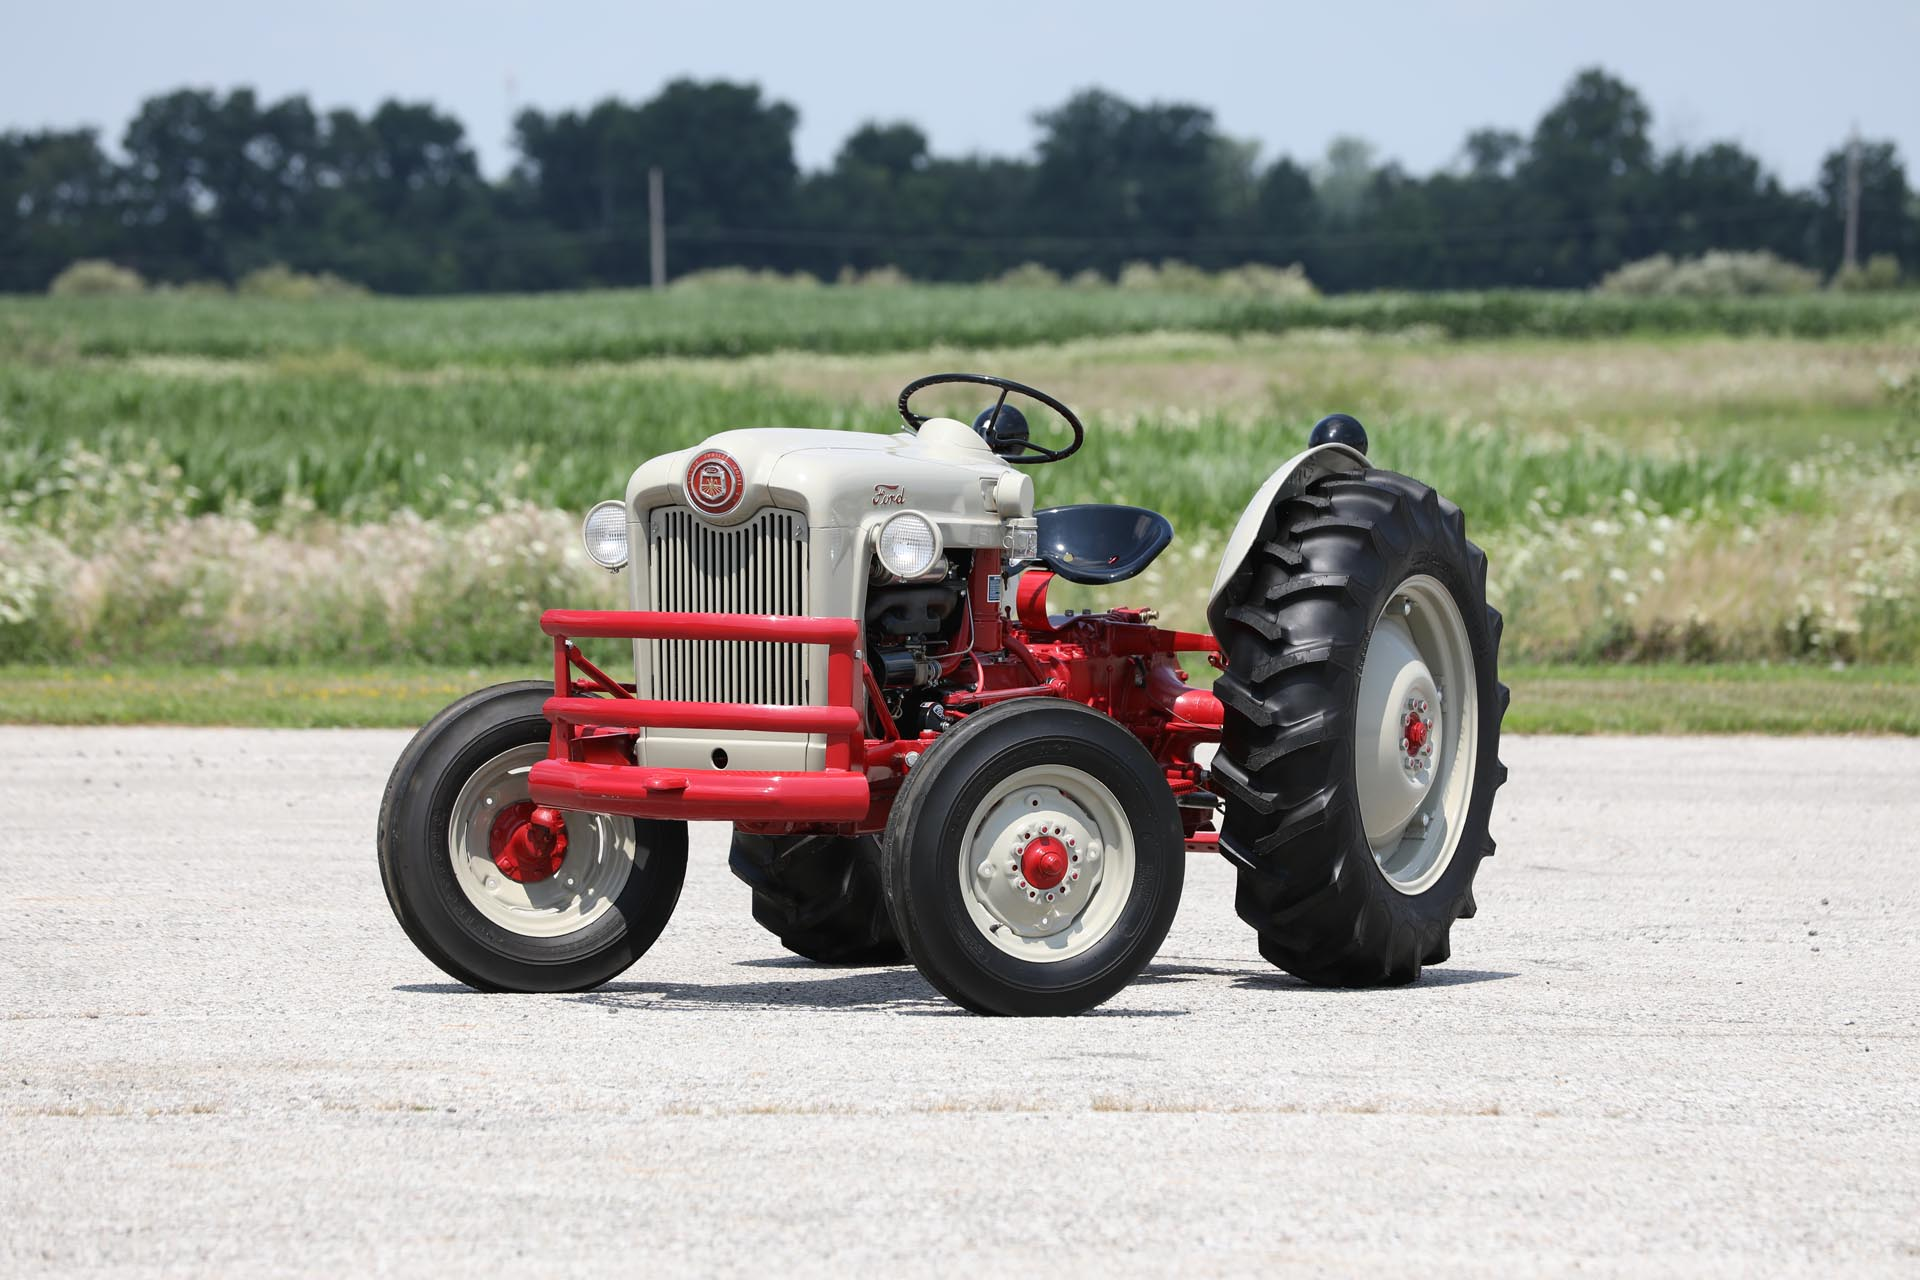 1953 Ford Golden Jubillee Tractor